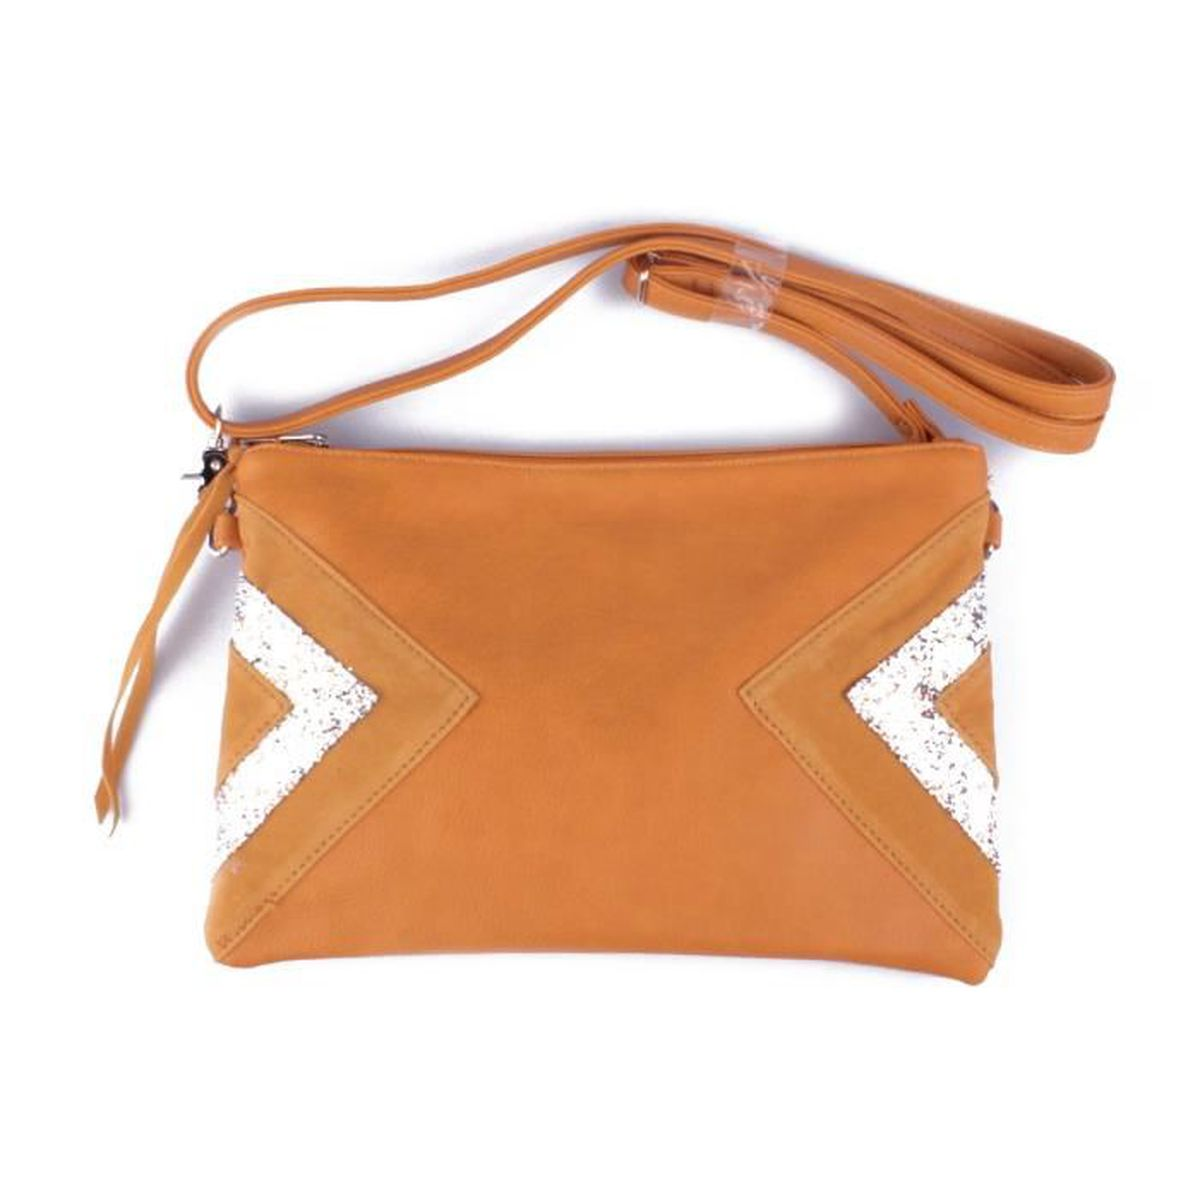 21390564dc Sac à main pochette jaune moutarde triangles daim et paillettes ...